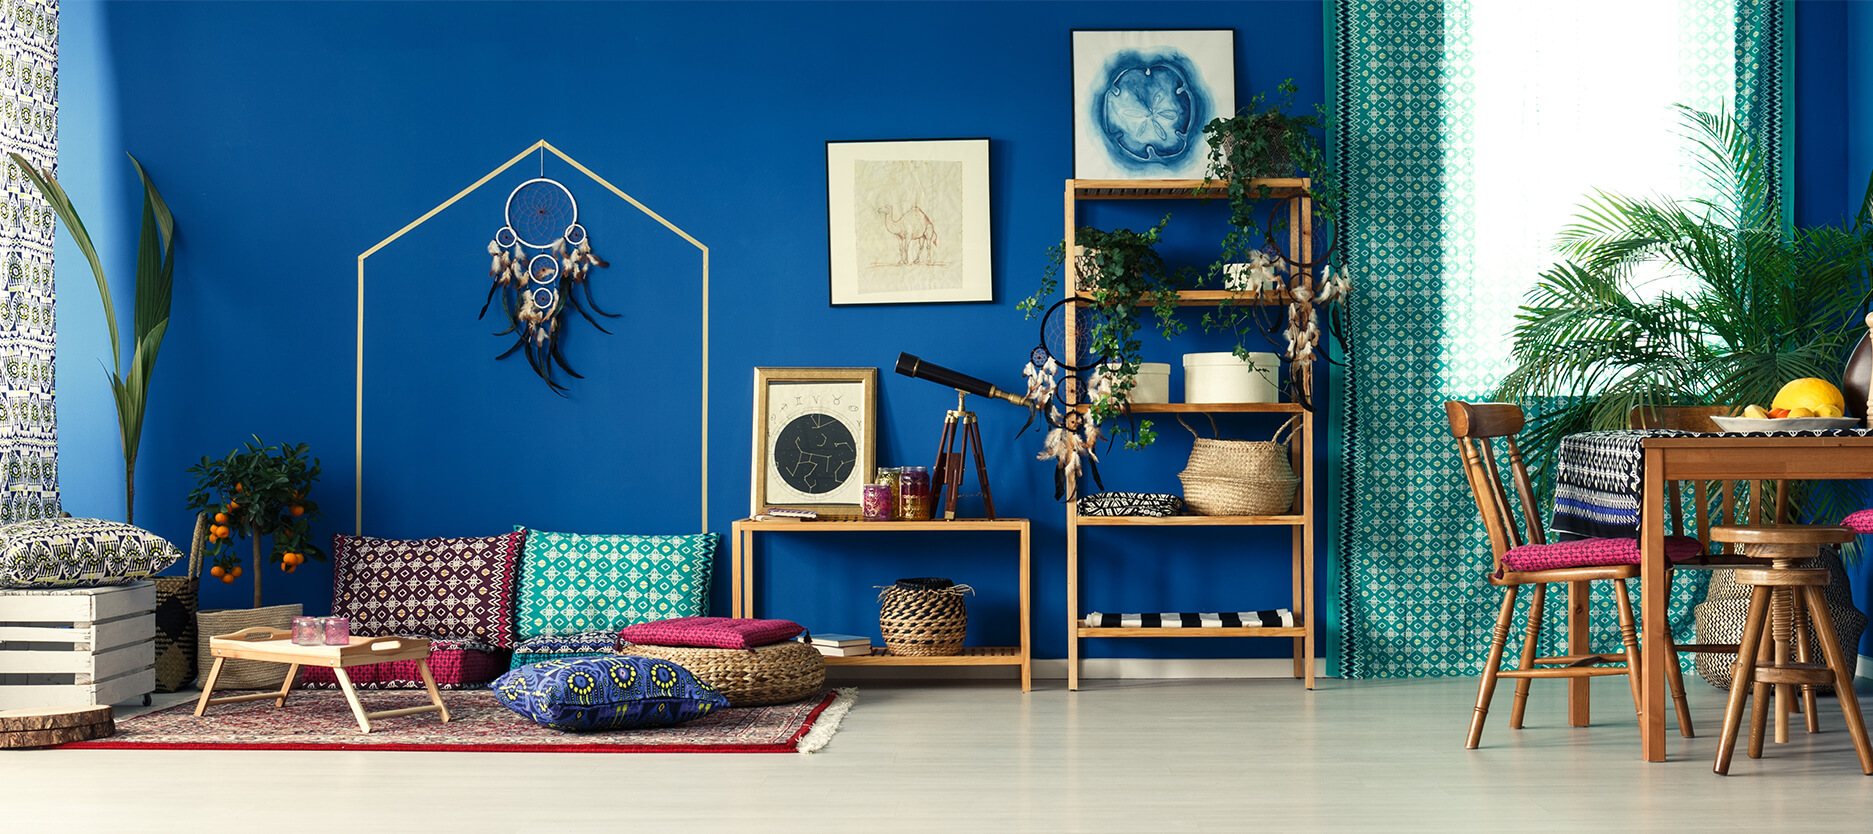 The Most Unusual Ways to Play With Blue in Your House